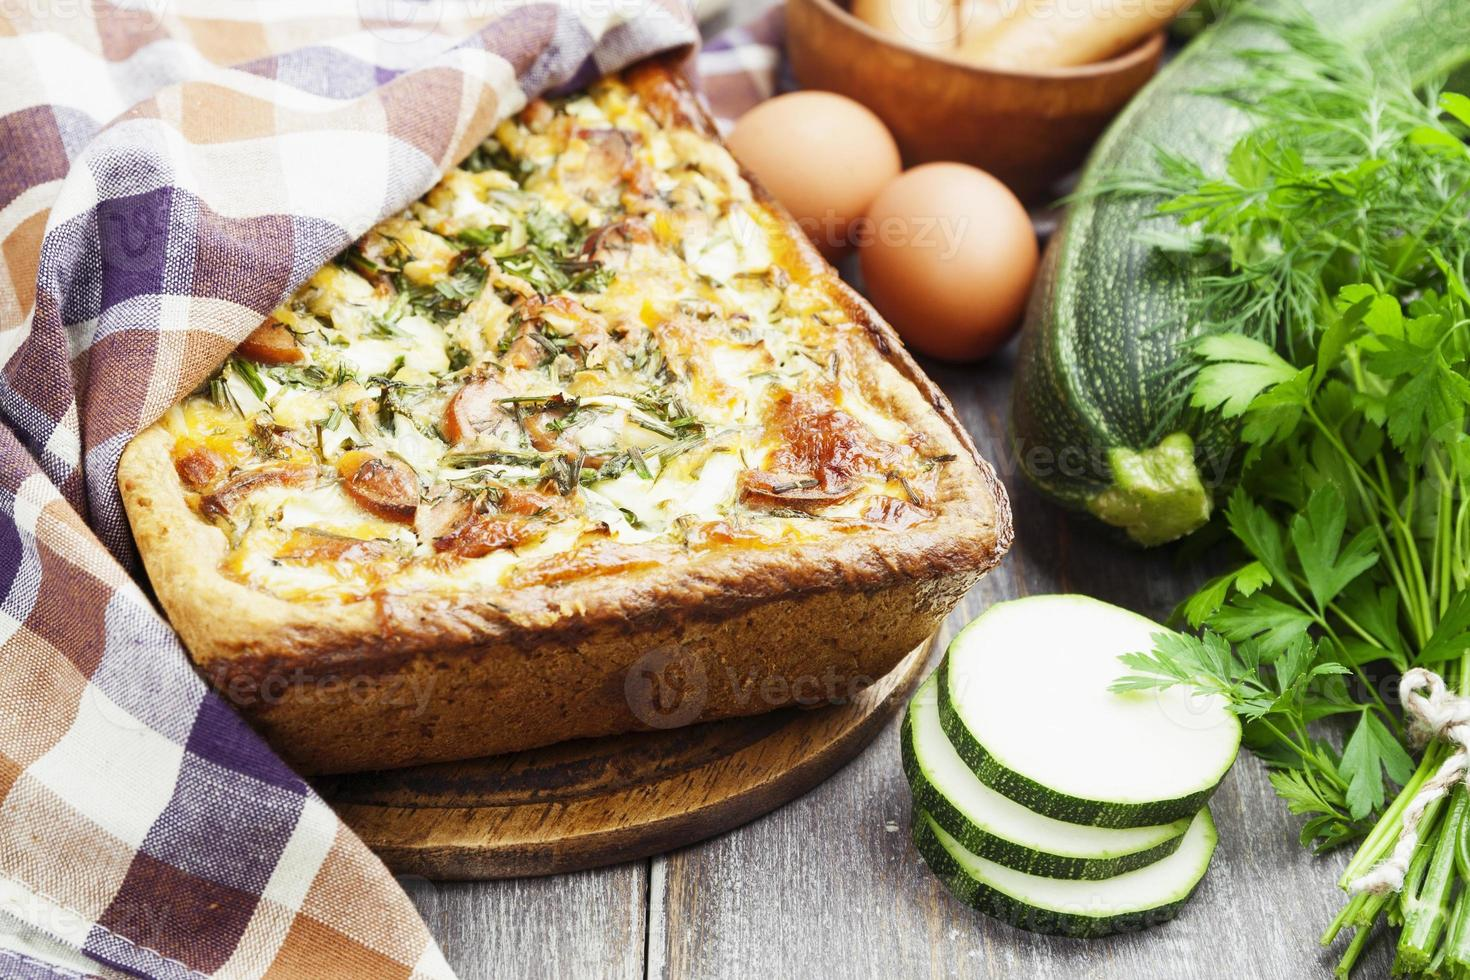 Pie with zucchini, sausage and herbs photo